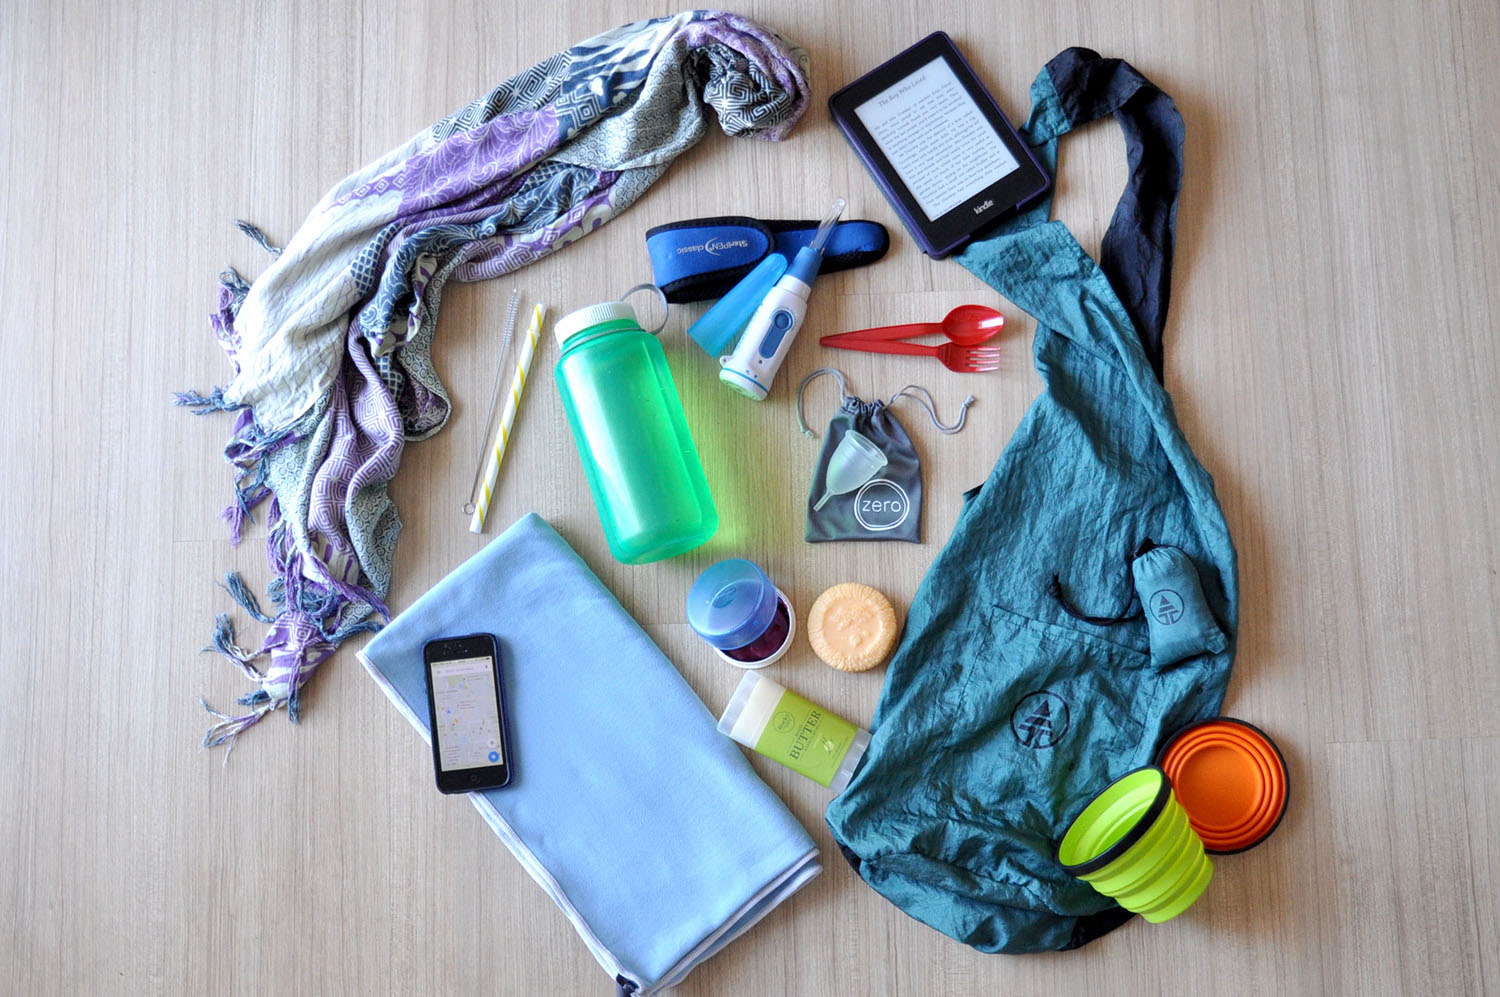 Eco-Friendly Travel Gear Packing List